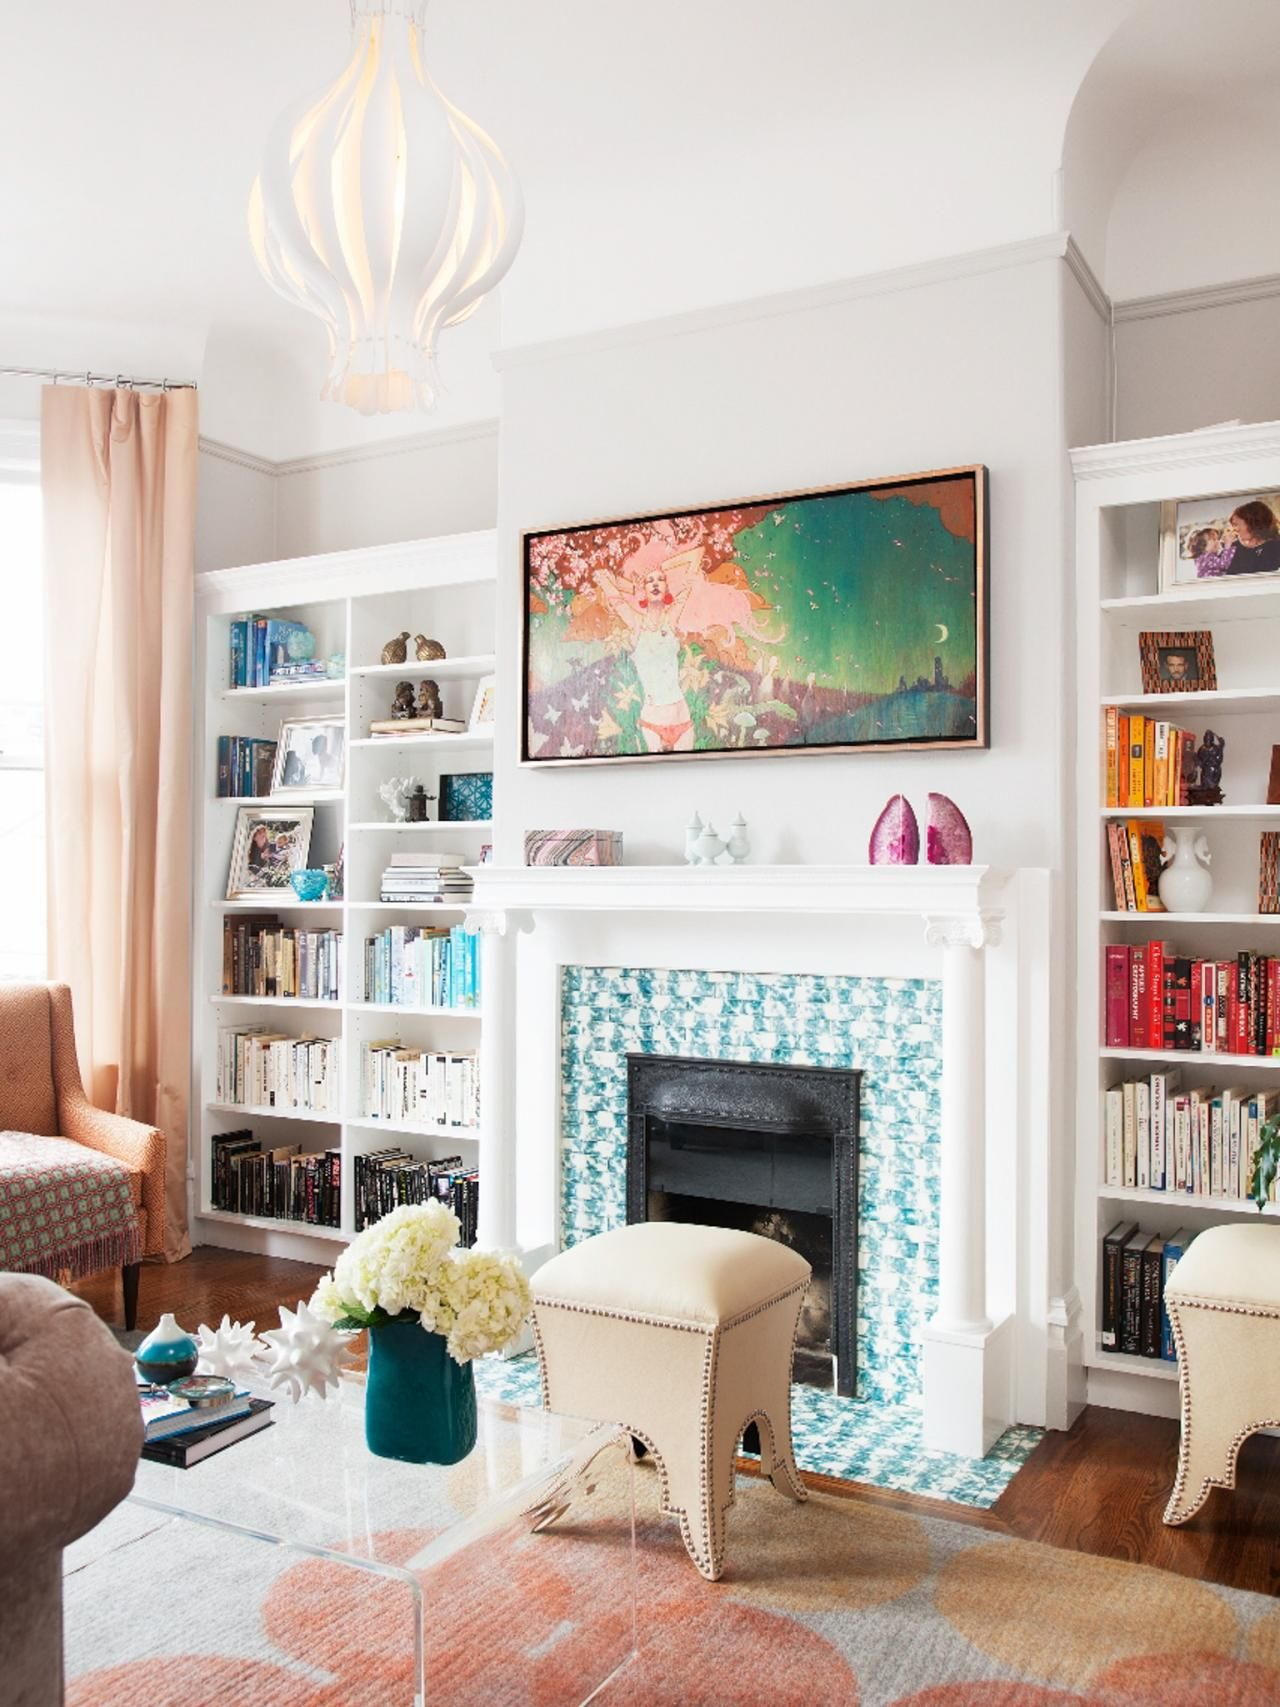 30 Biggest Decorating Mistakes and Solutions | Pinterest | Hgtv ...